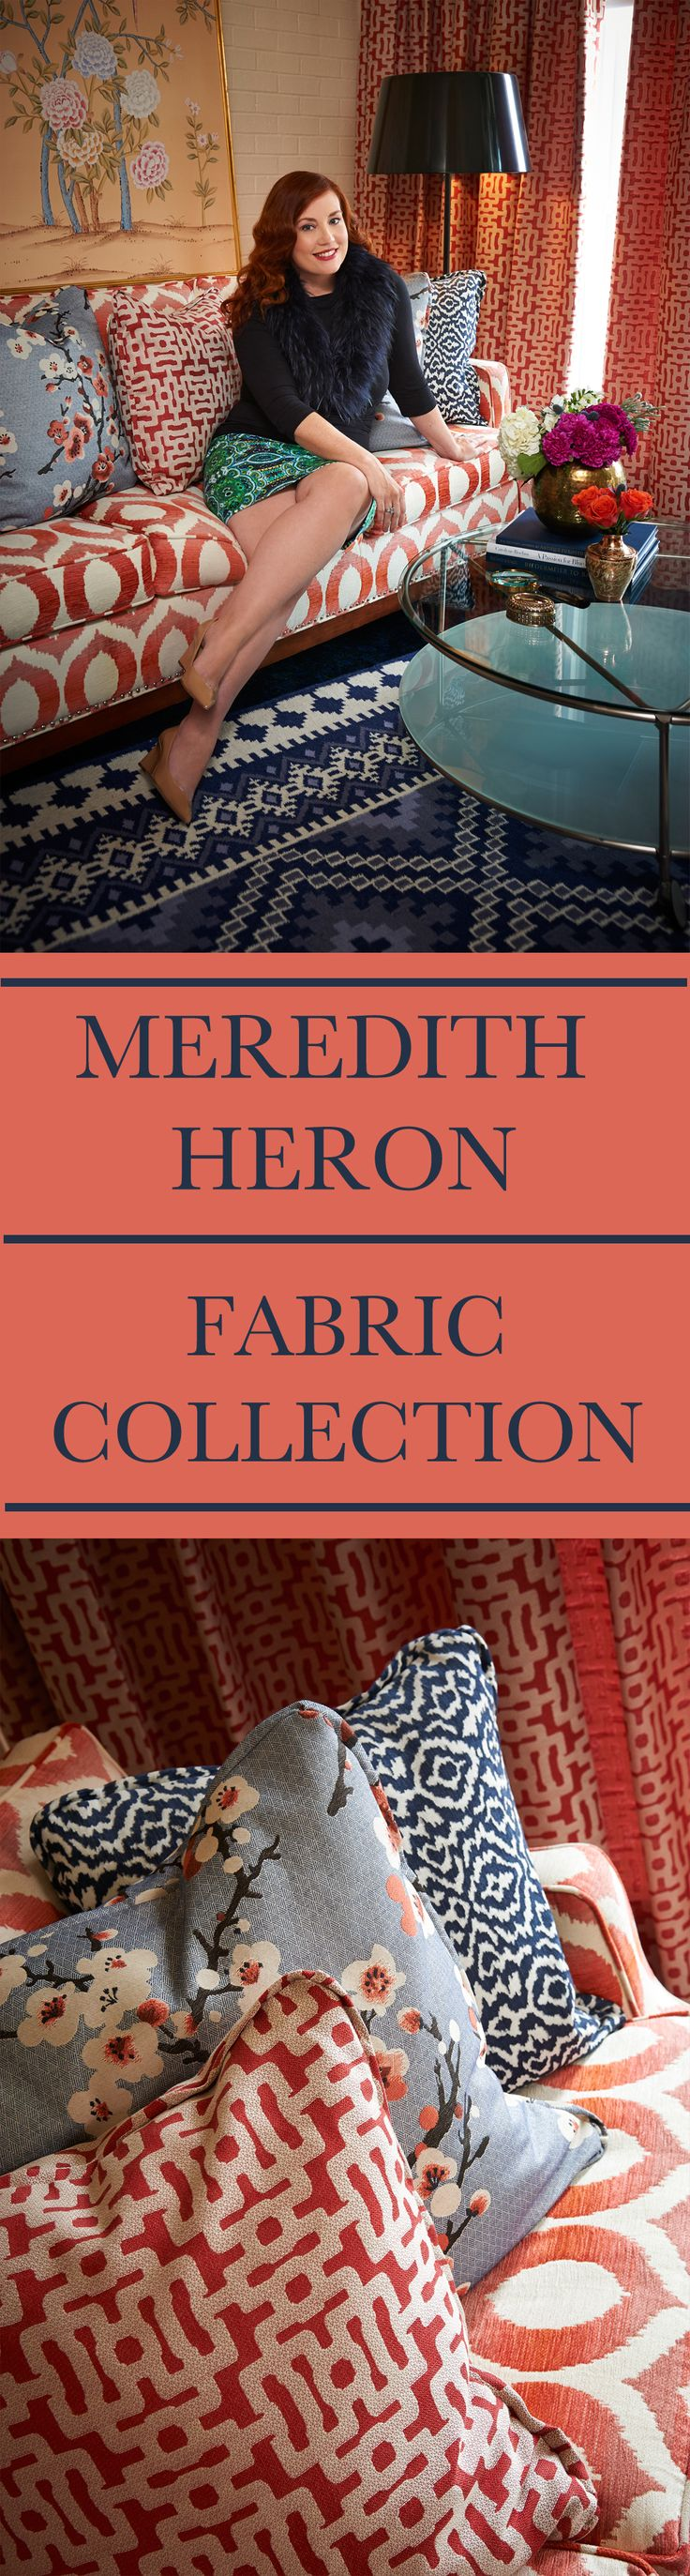 Meredith Heron Fabric Collection for jffabrics available at